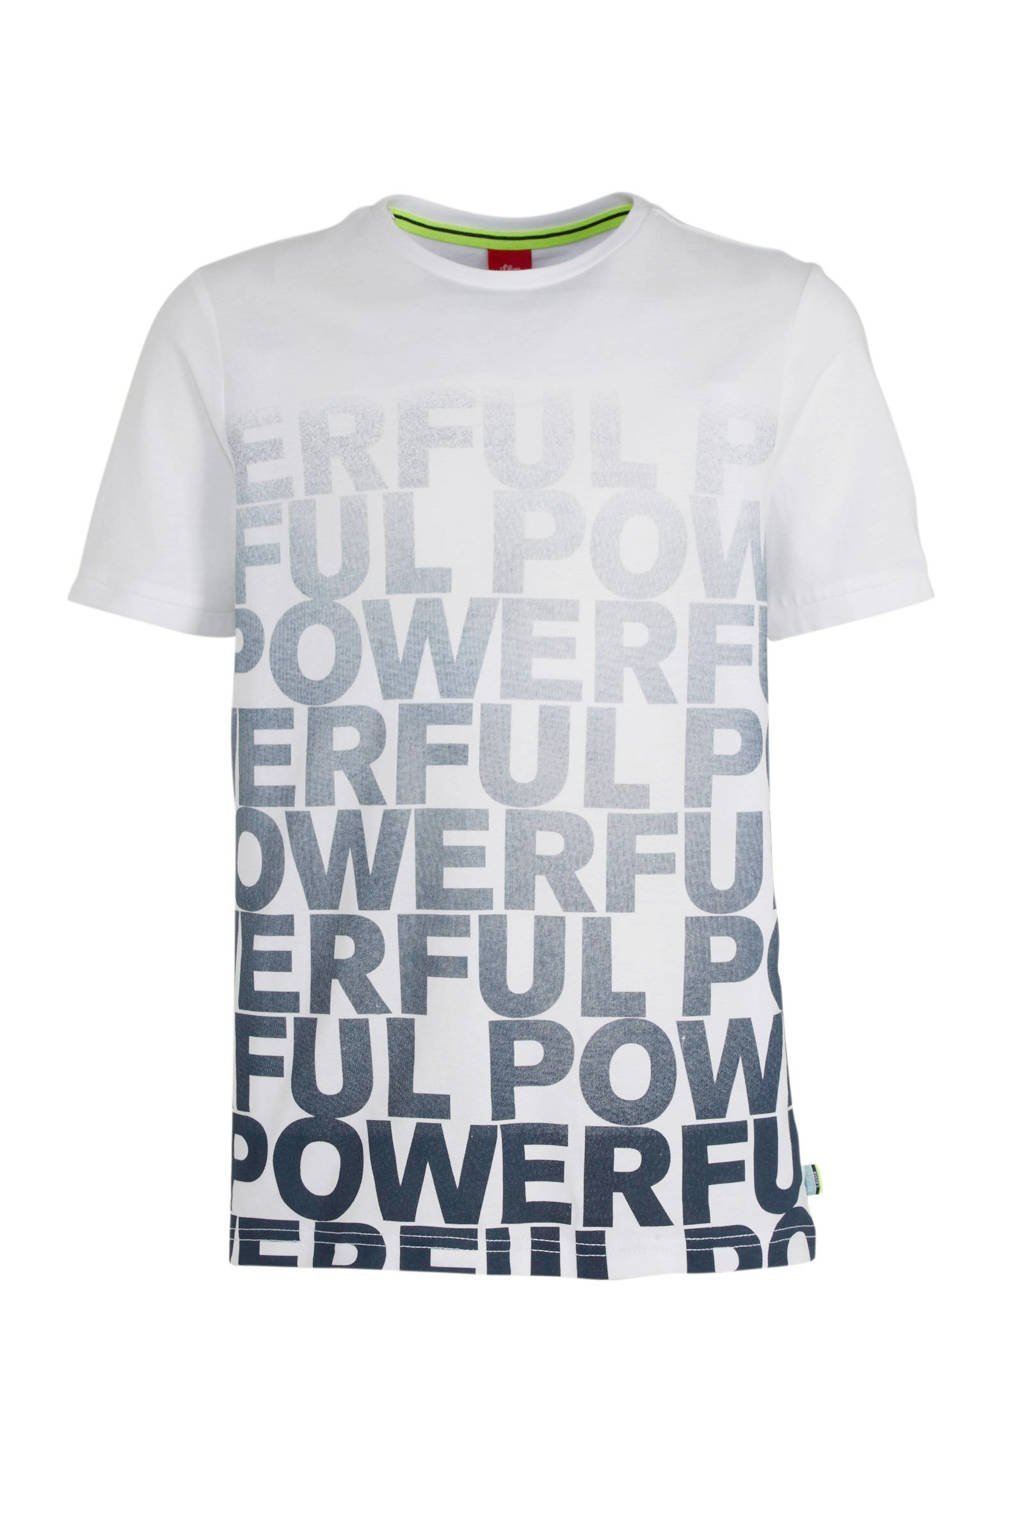 s.Oliver T-shirt met tekst wit/donkerblauw, Wit/donkerblauw